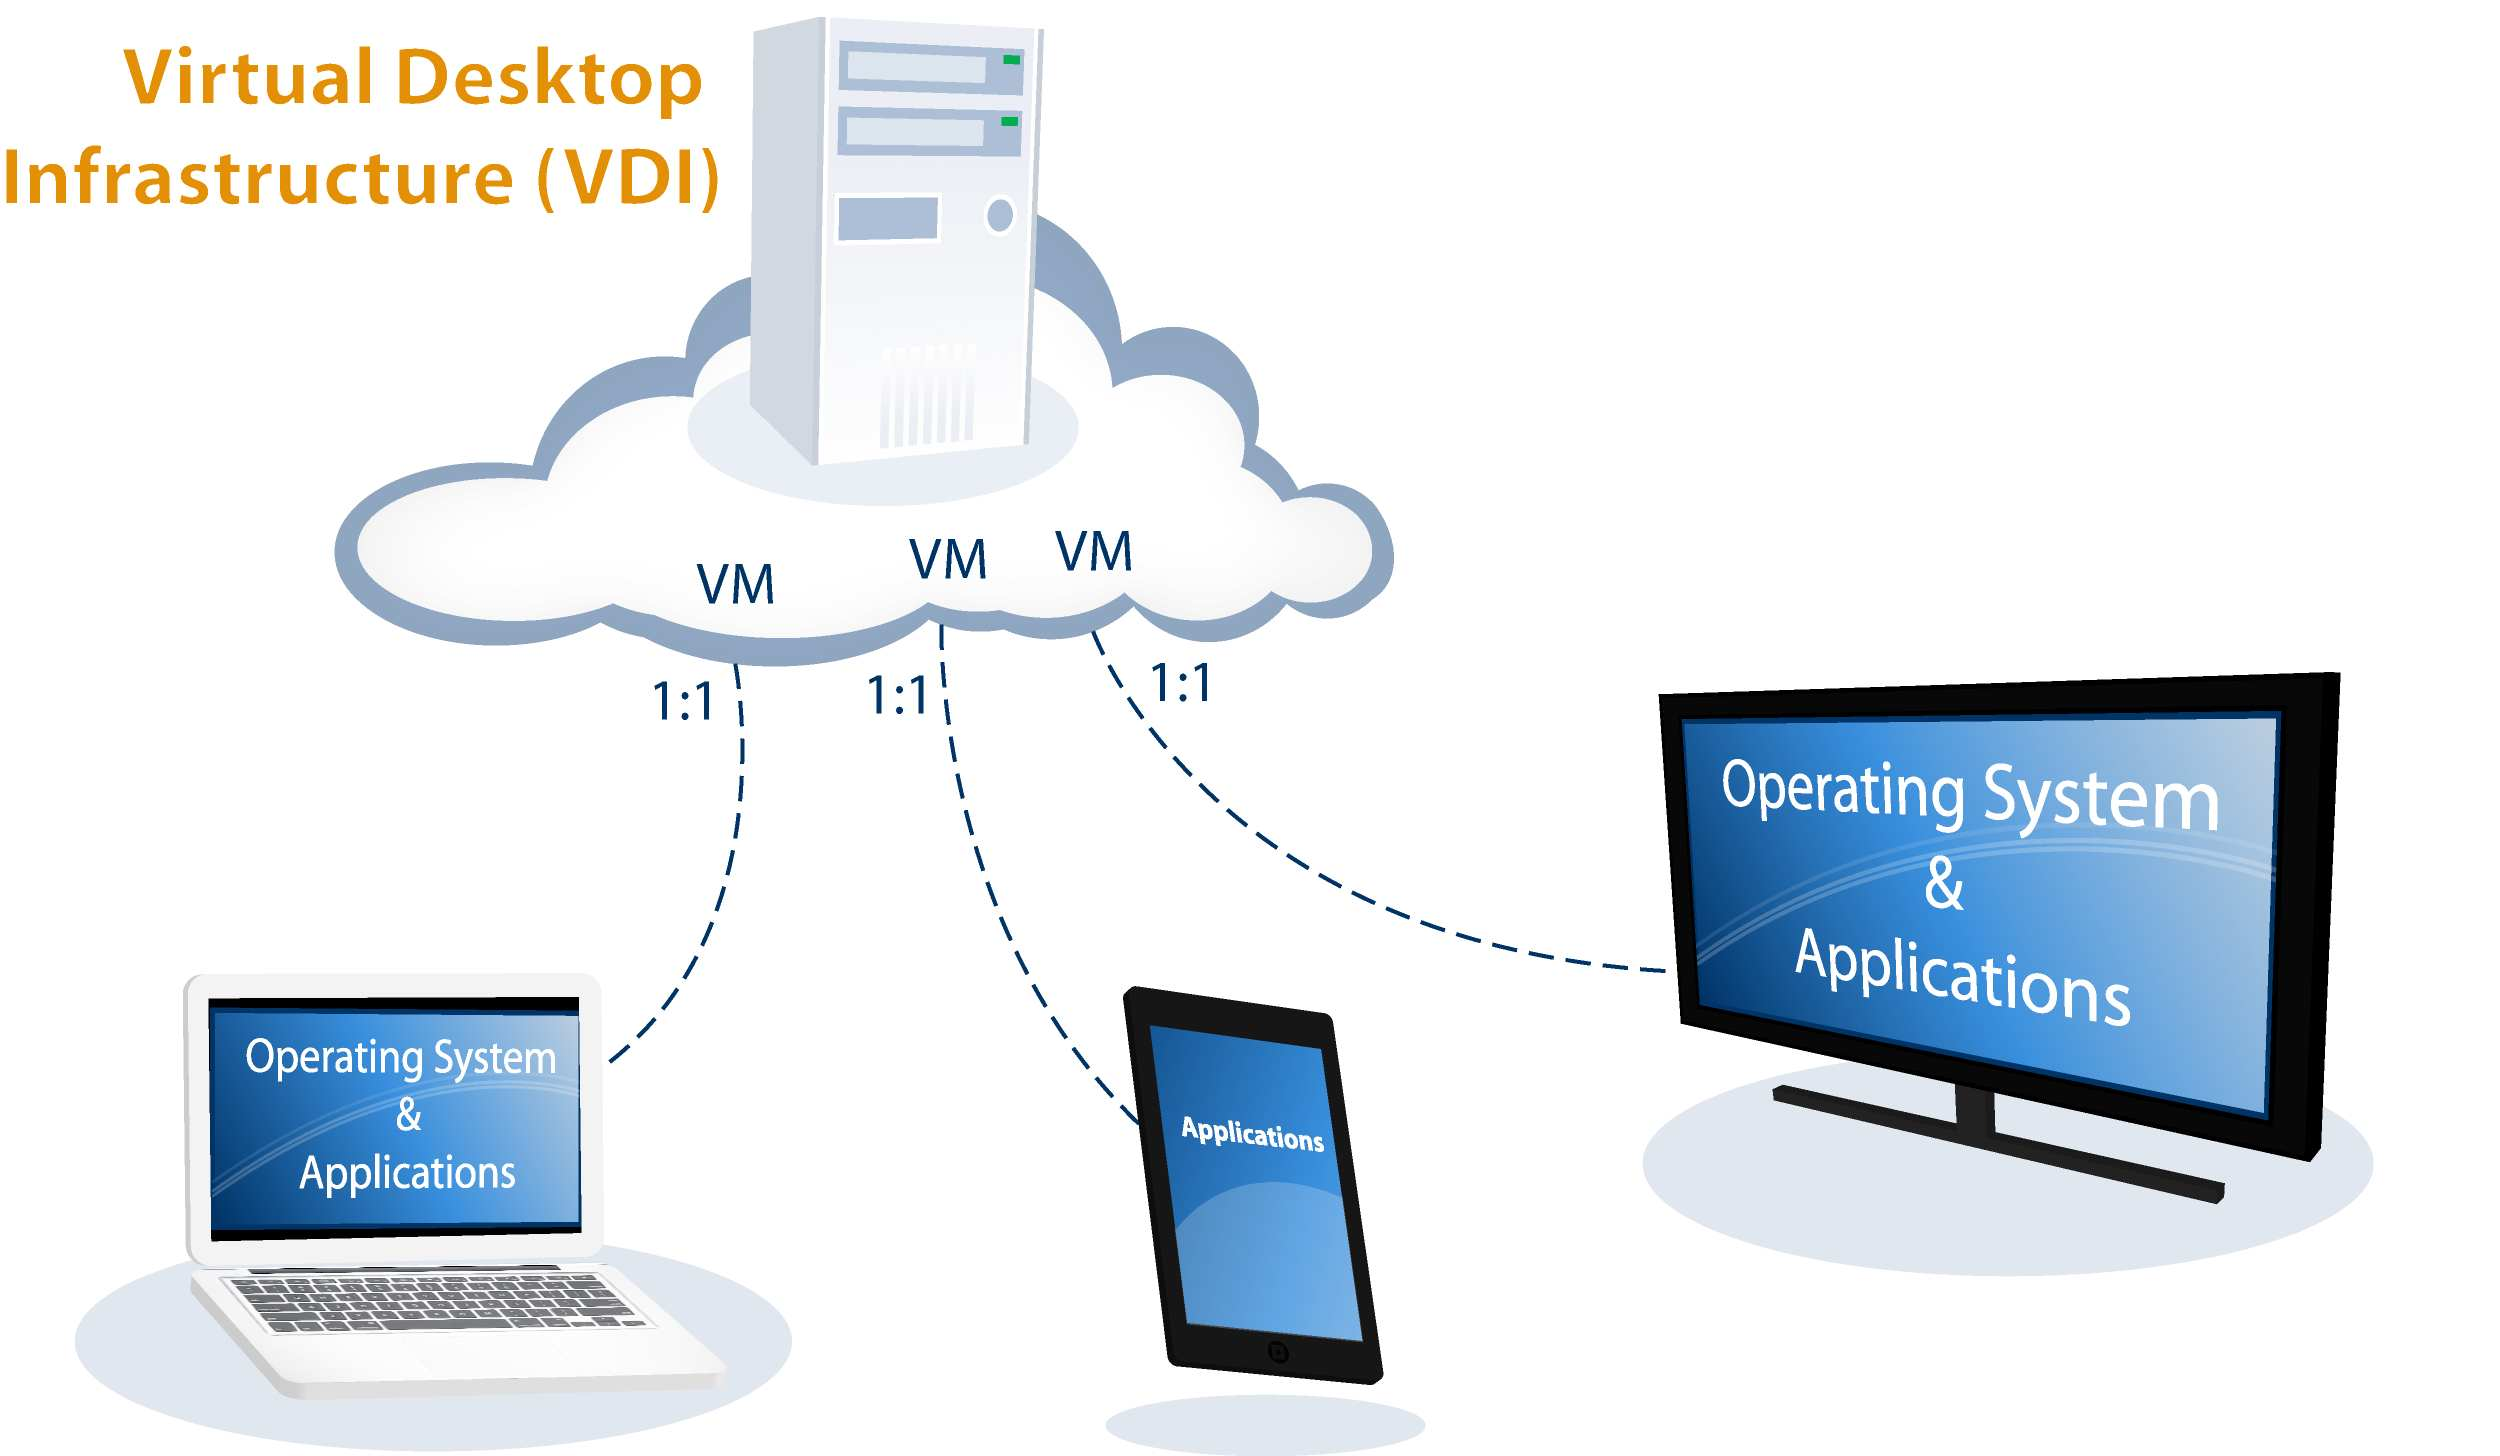 the virtual desktop and infrastructure The oracle virtual desktop infrastructure product has been discontinued downloading oracle virtual desktop infrastructure 353 download the oracle virtual desktop infrastructure 353 media pack from the patches & updates section on my oracle support.